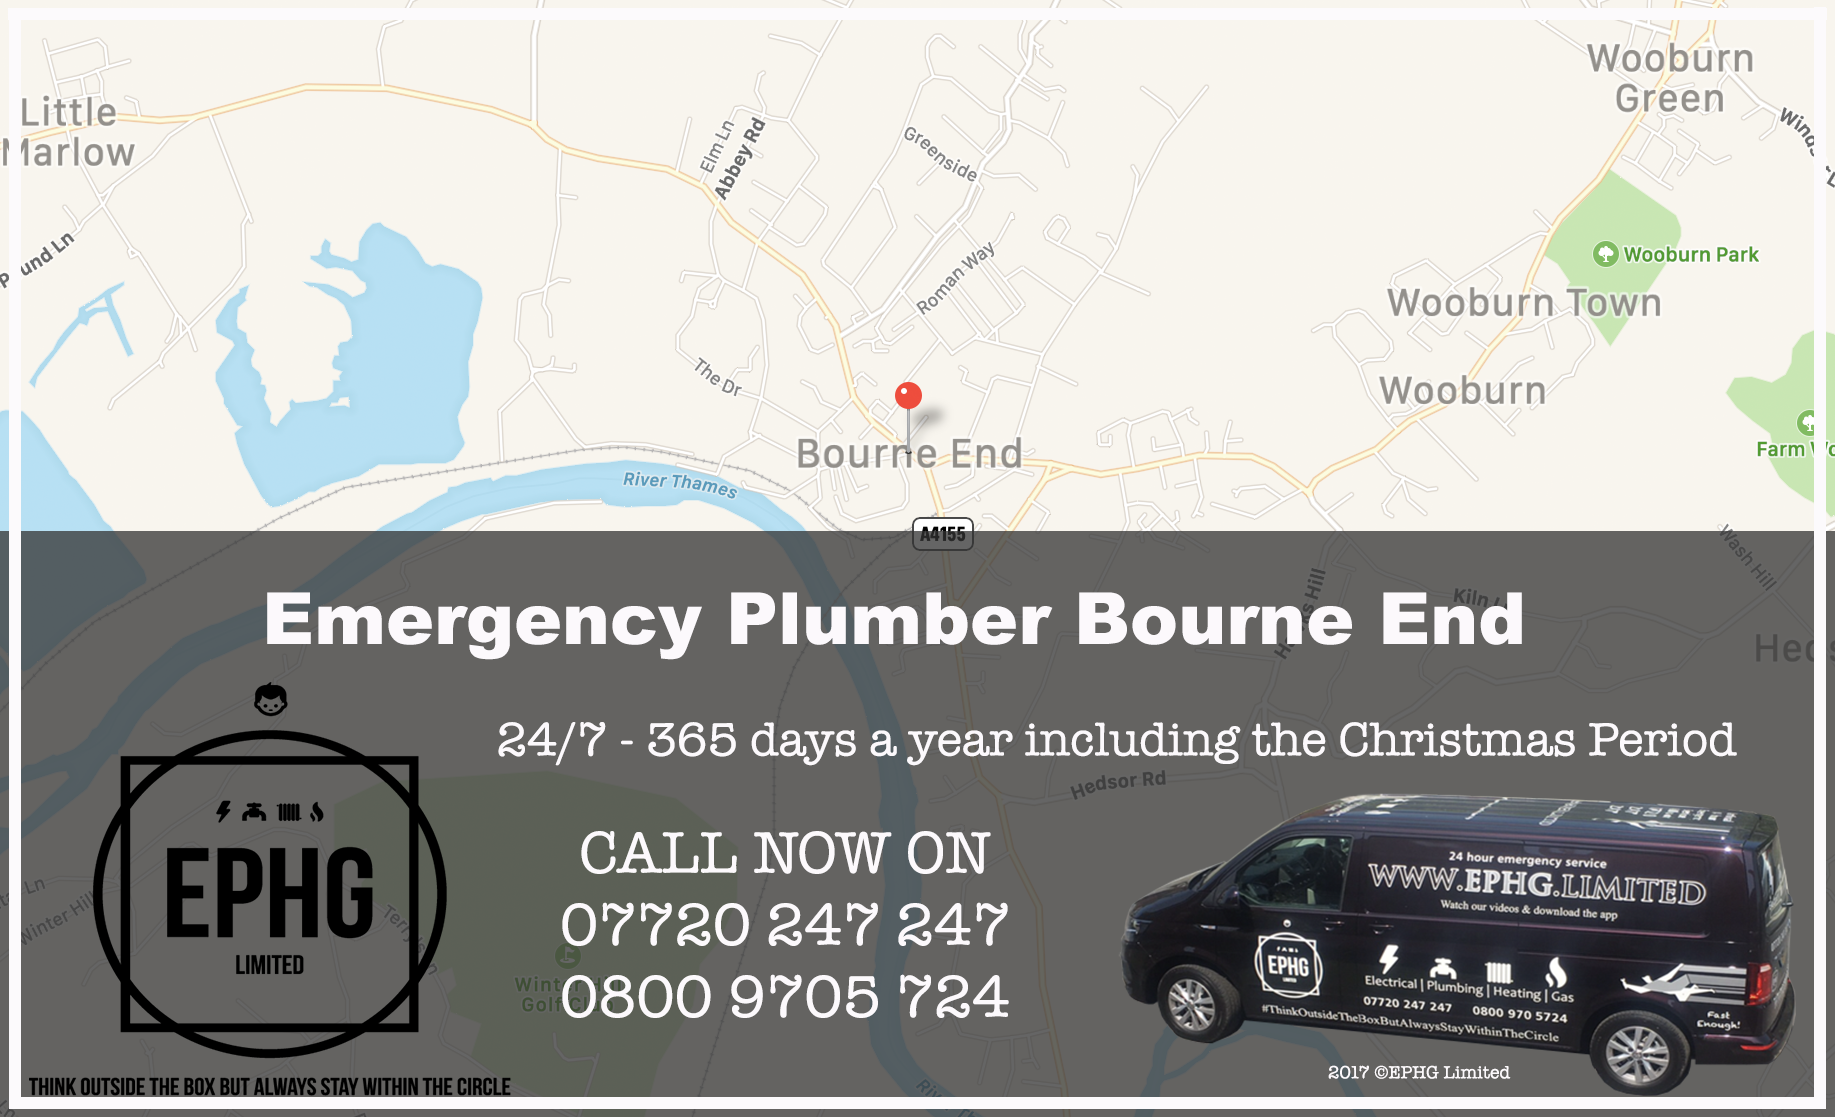 24 Hour Emergency Plumber Bourne End